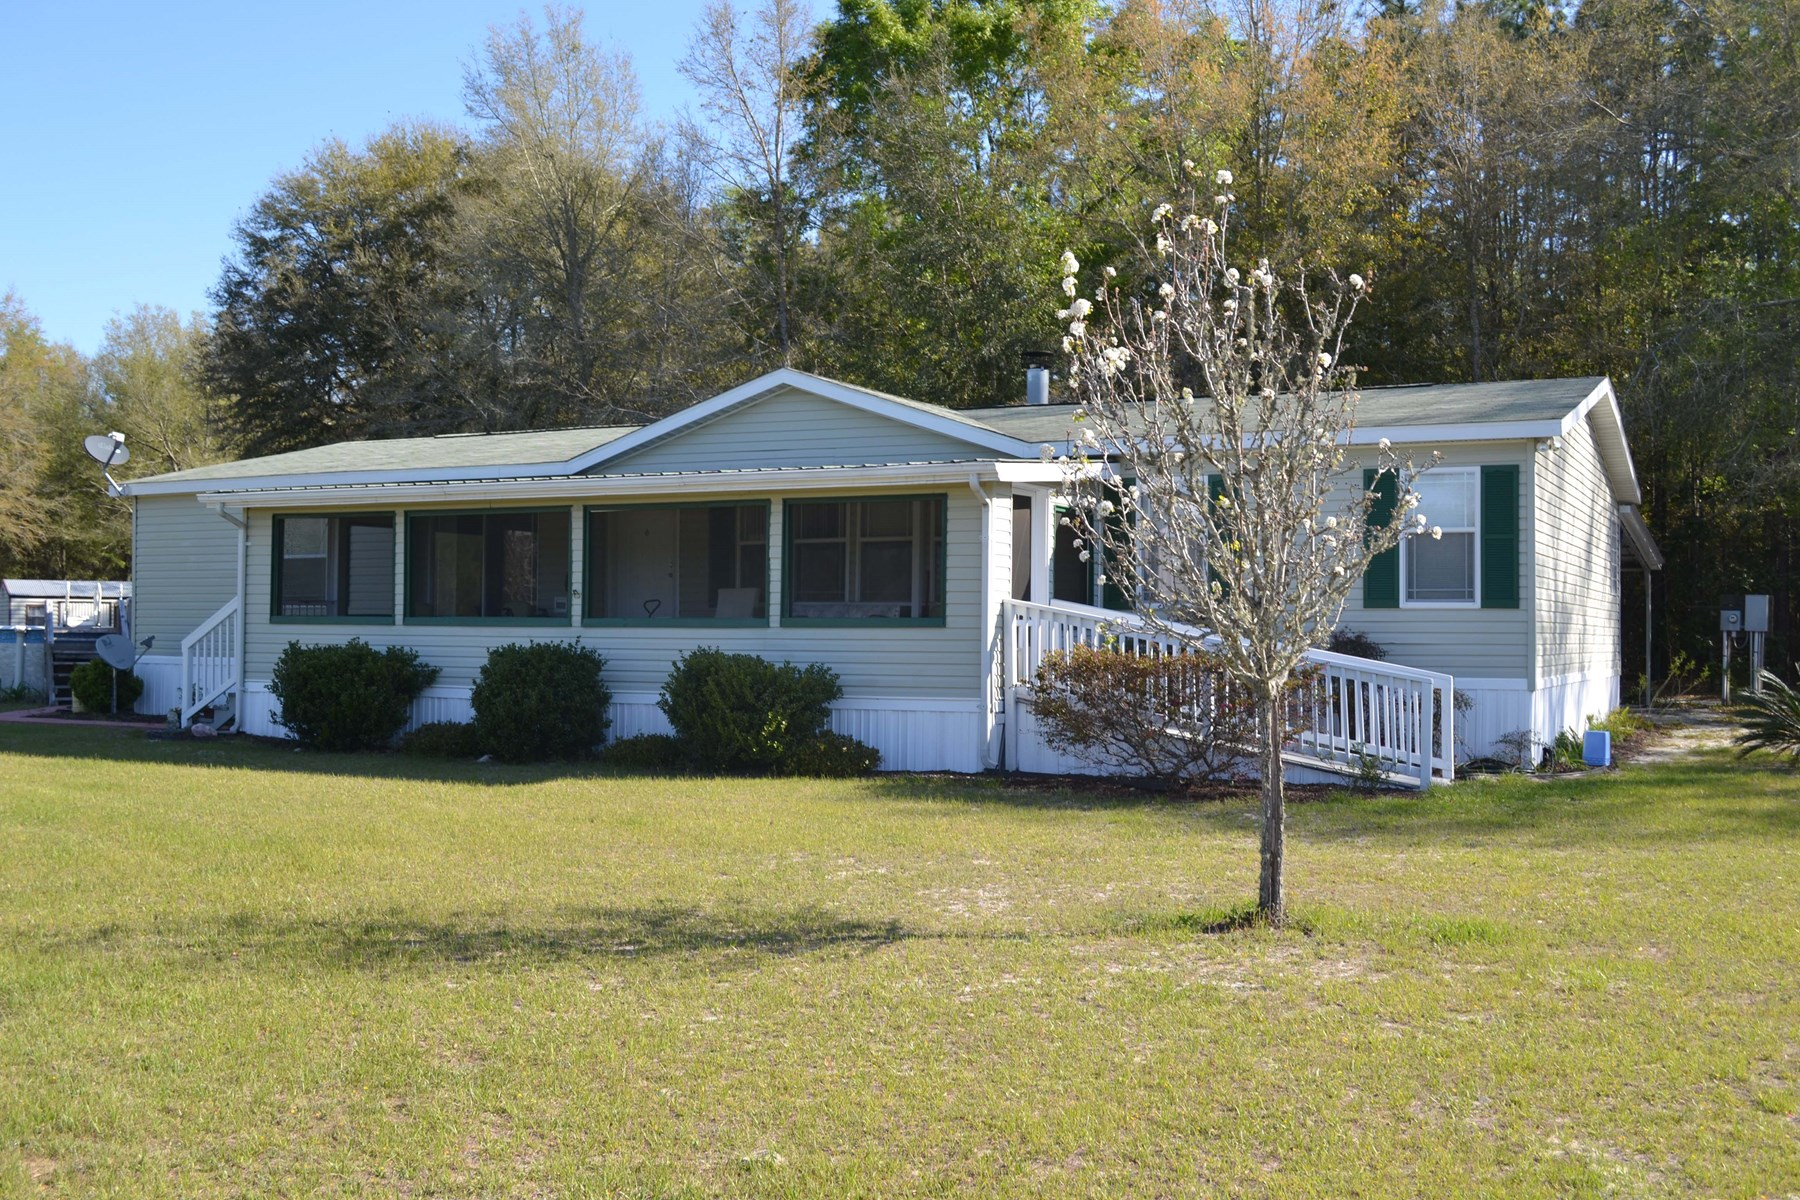 10 GORGEOUS ACRES WITH MOBILE HOME FOR SALE!